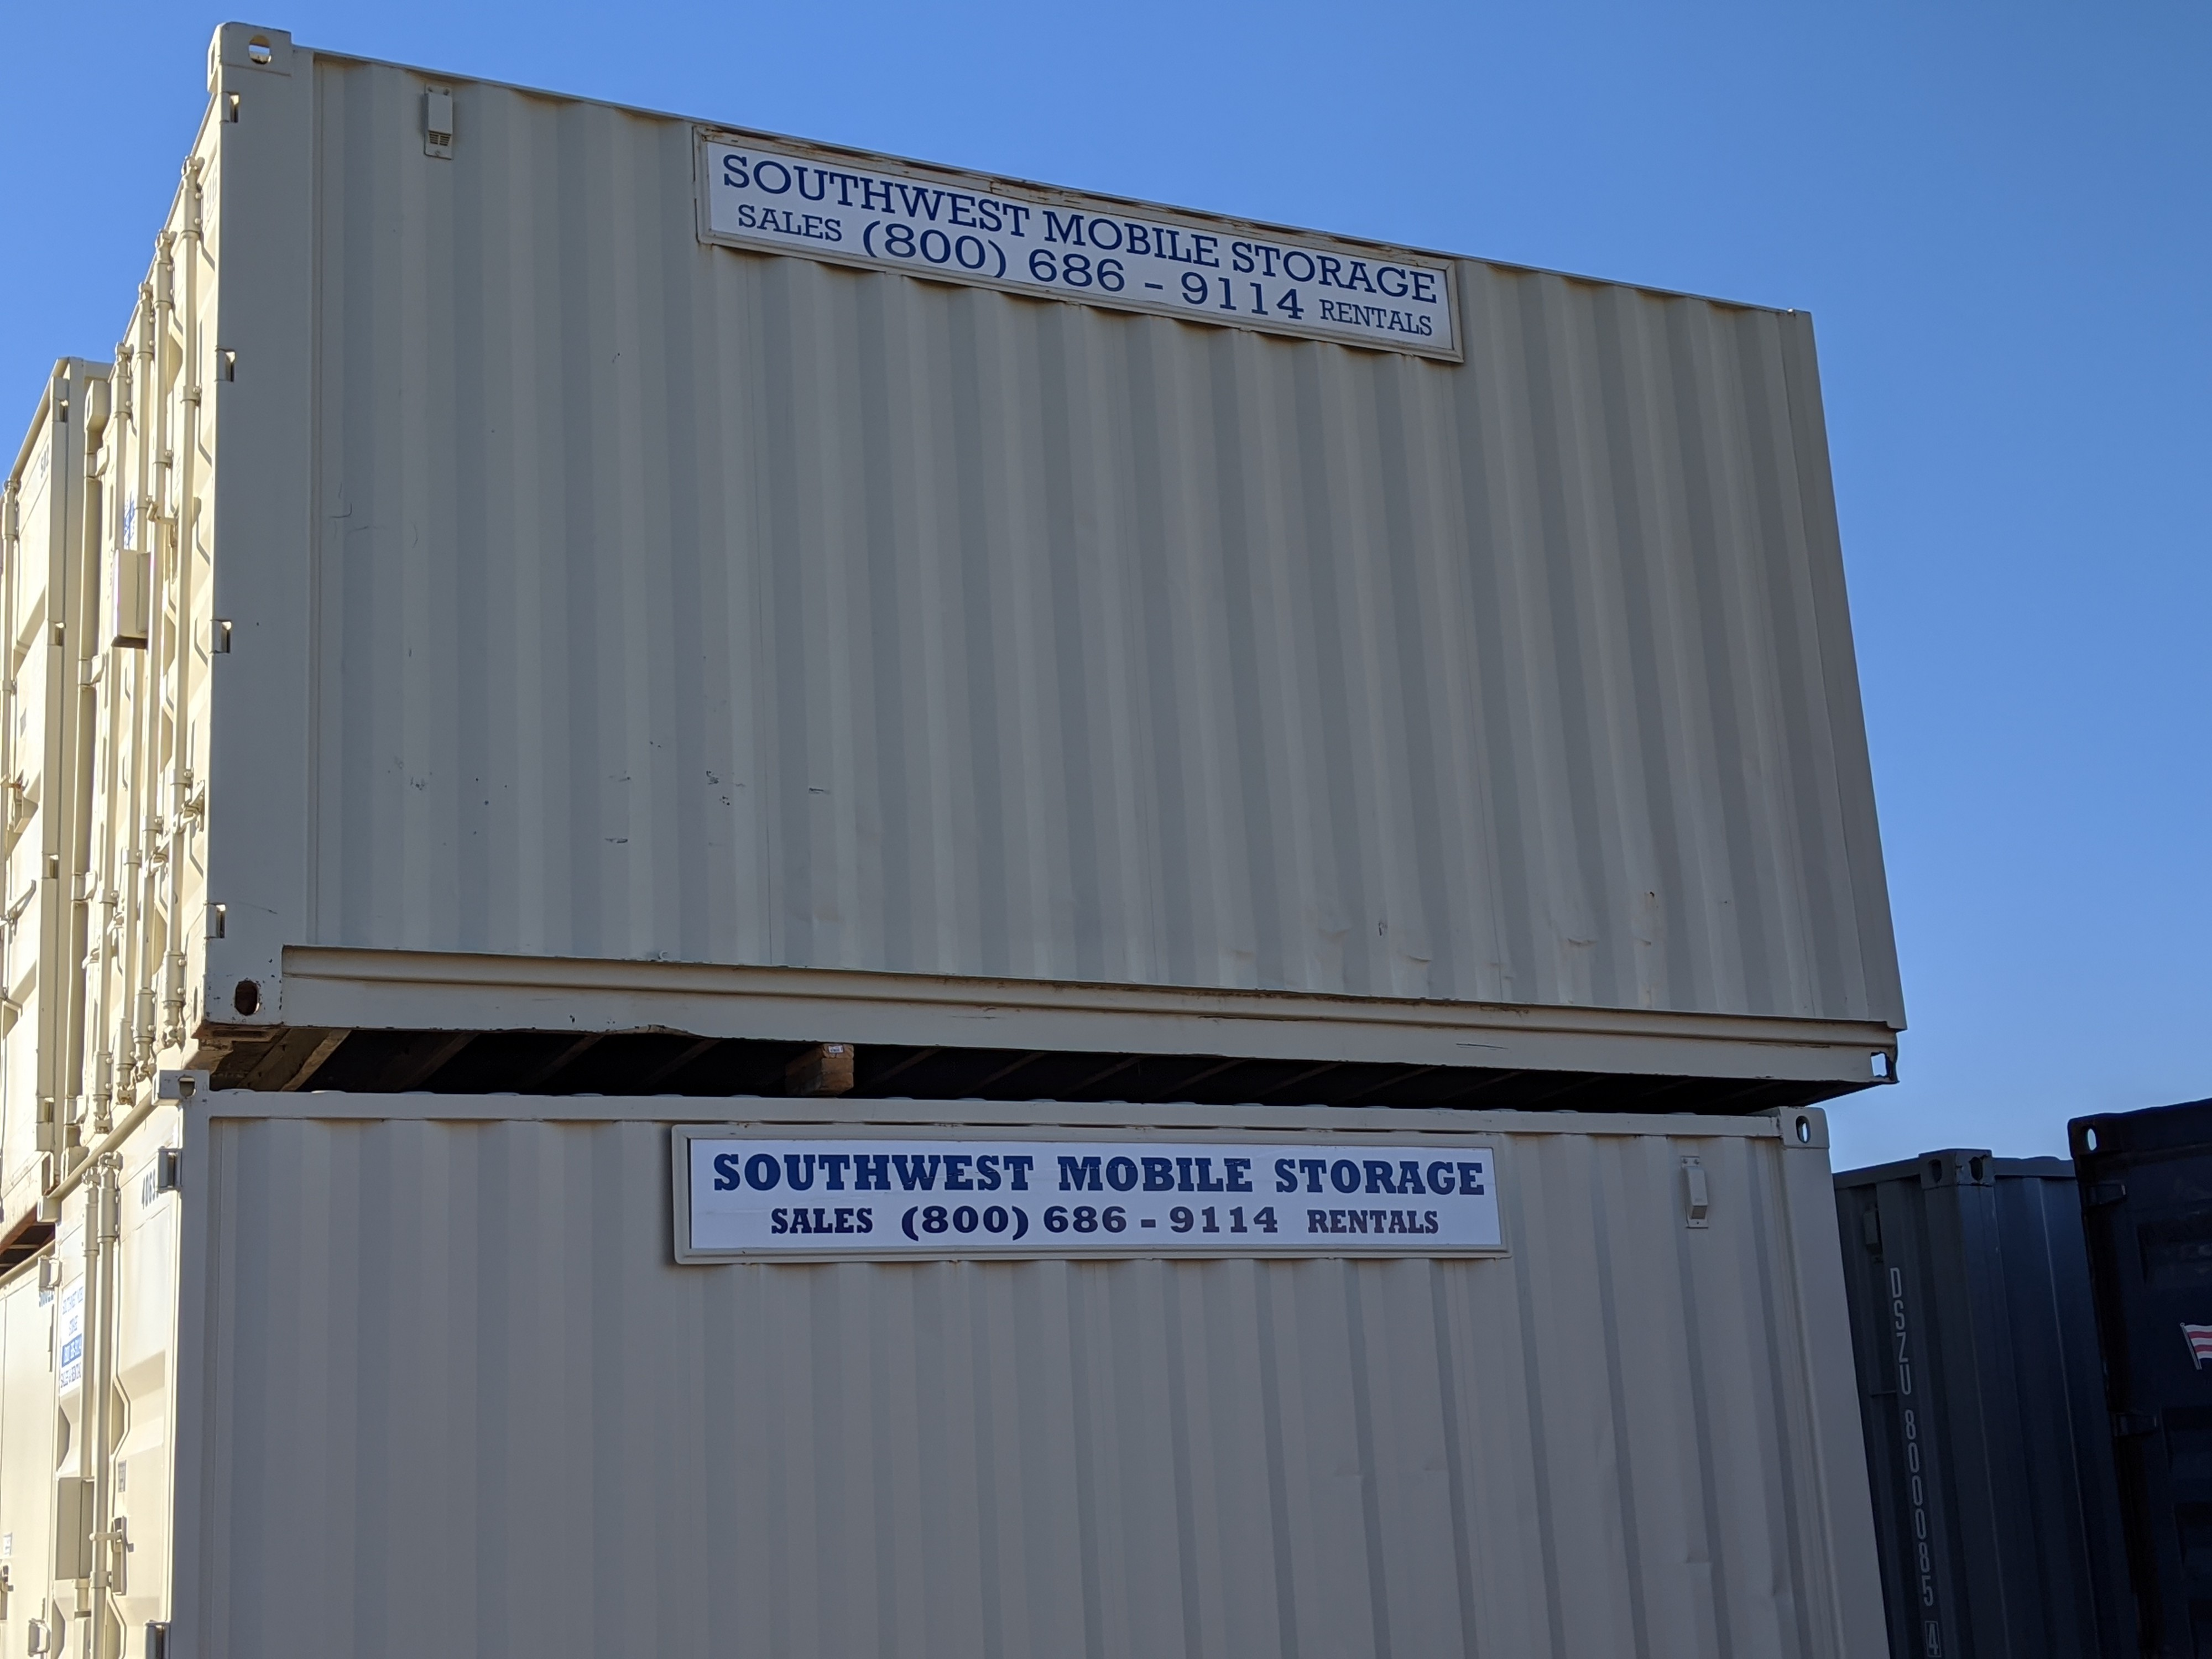 Southwest Mobile Storage Shipping Storage Containers